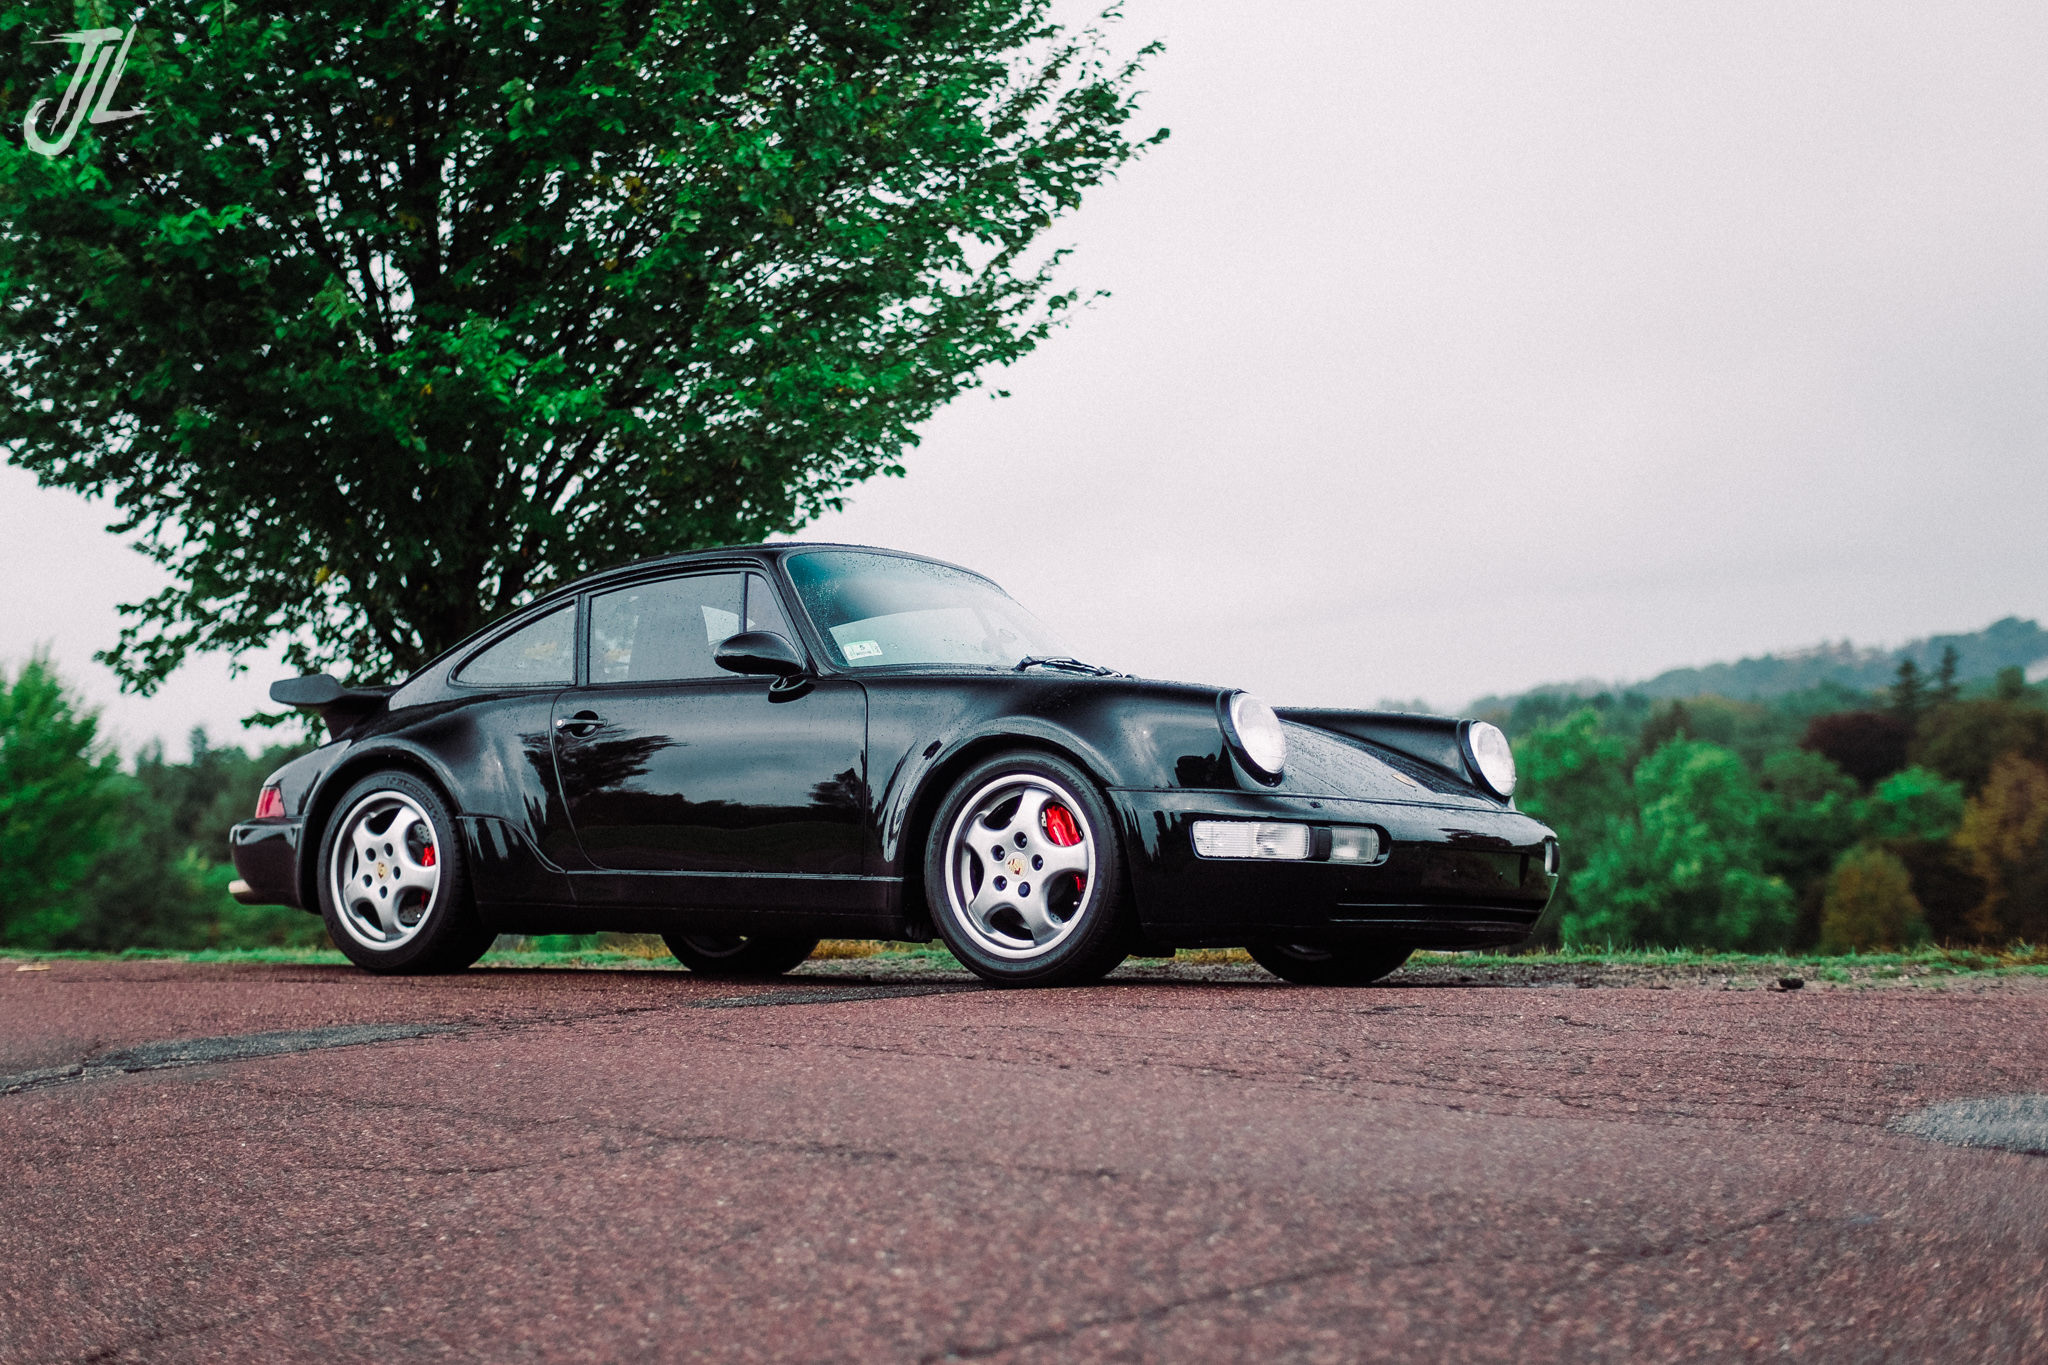 turbo964 compressed (2 of 17).jpg